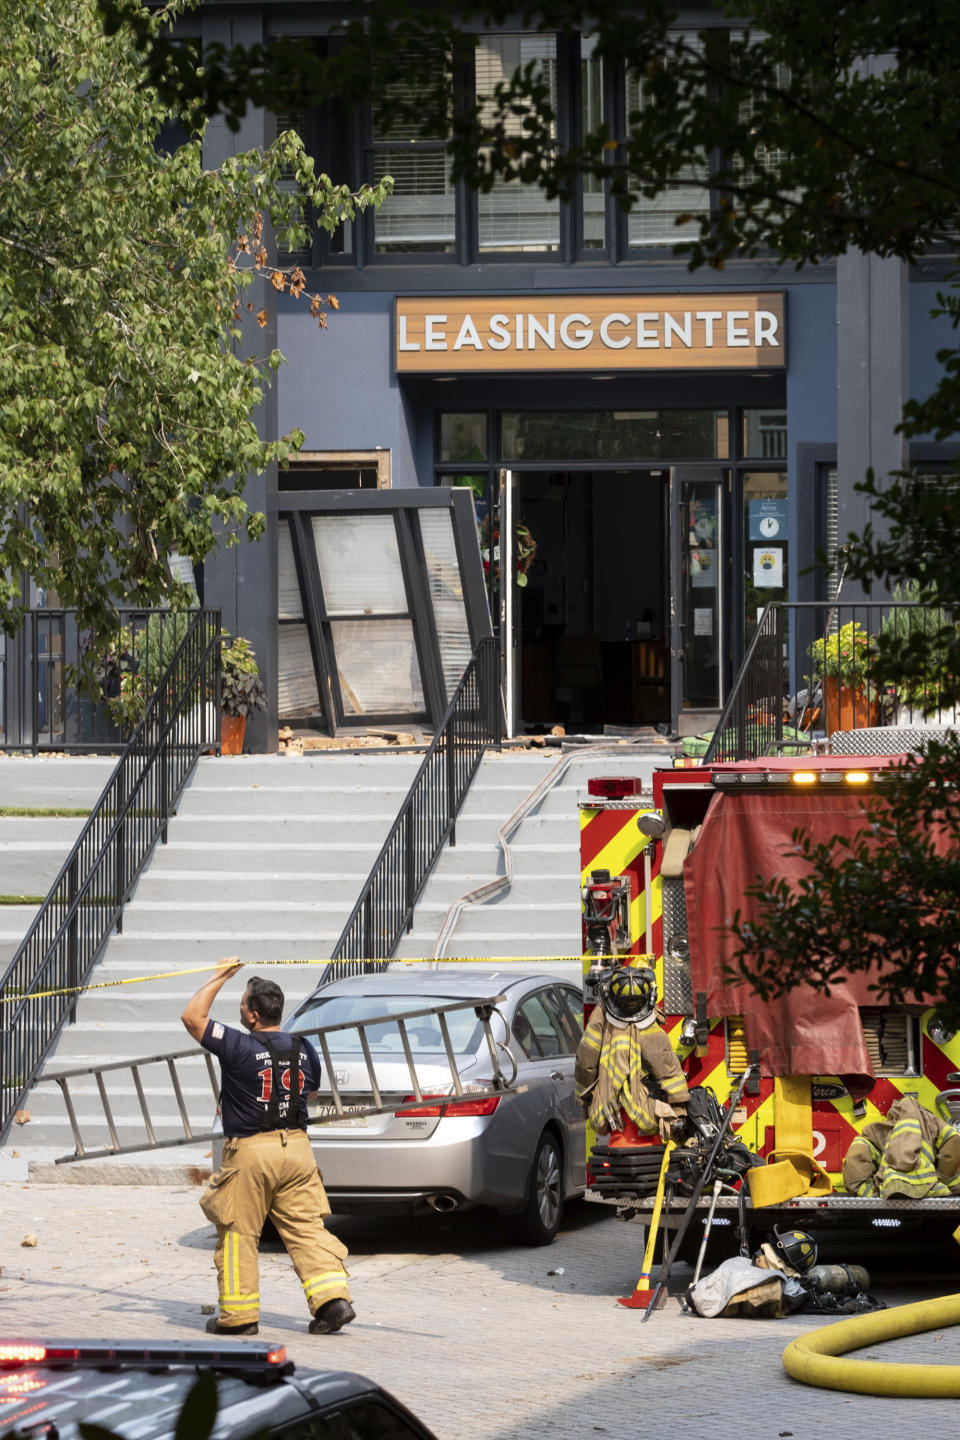 A firefighter carries a ladder past the damaged leasing center following an apartment building explosion, Sunday, Sept. 12, 2021, in Dunwoody, Ga., just outside of Atlanta. (AP Photo/Ben Gray)